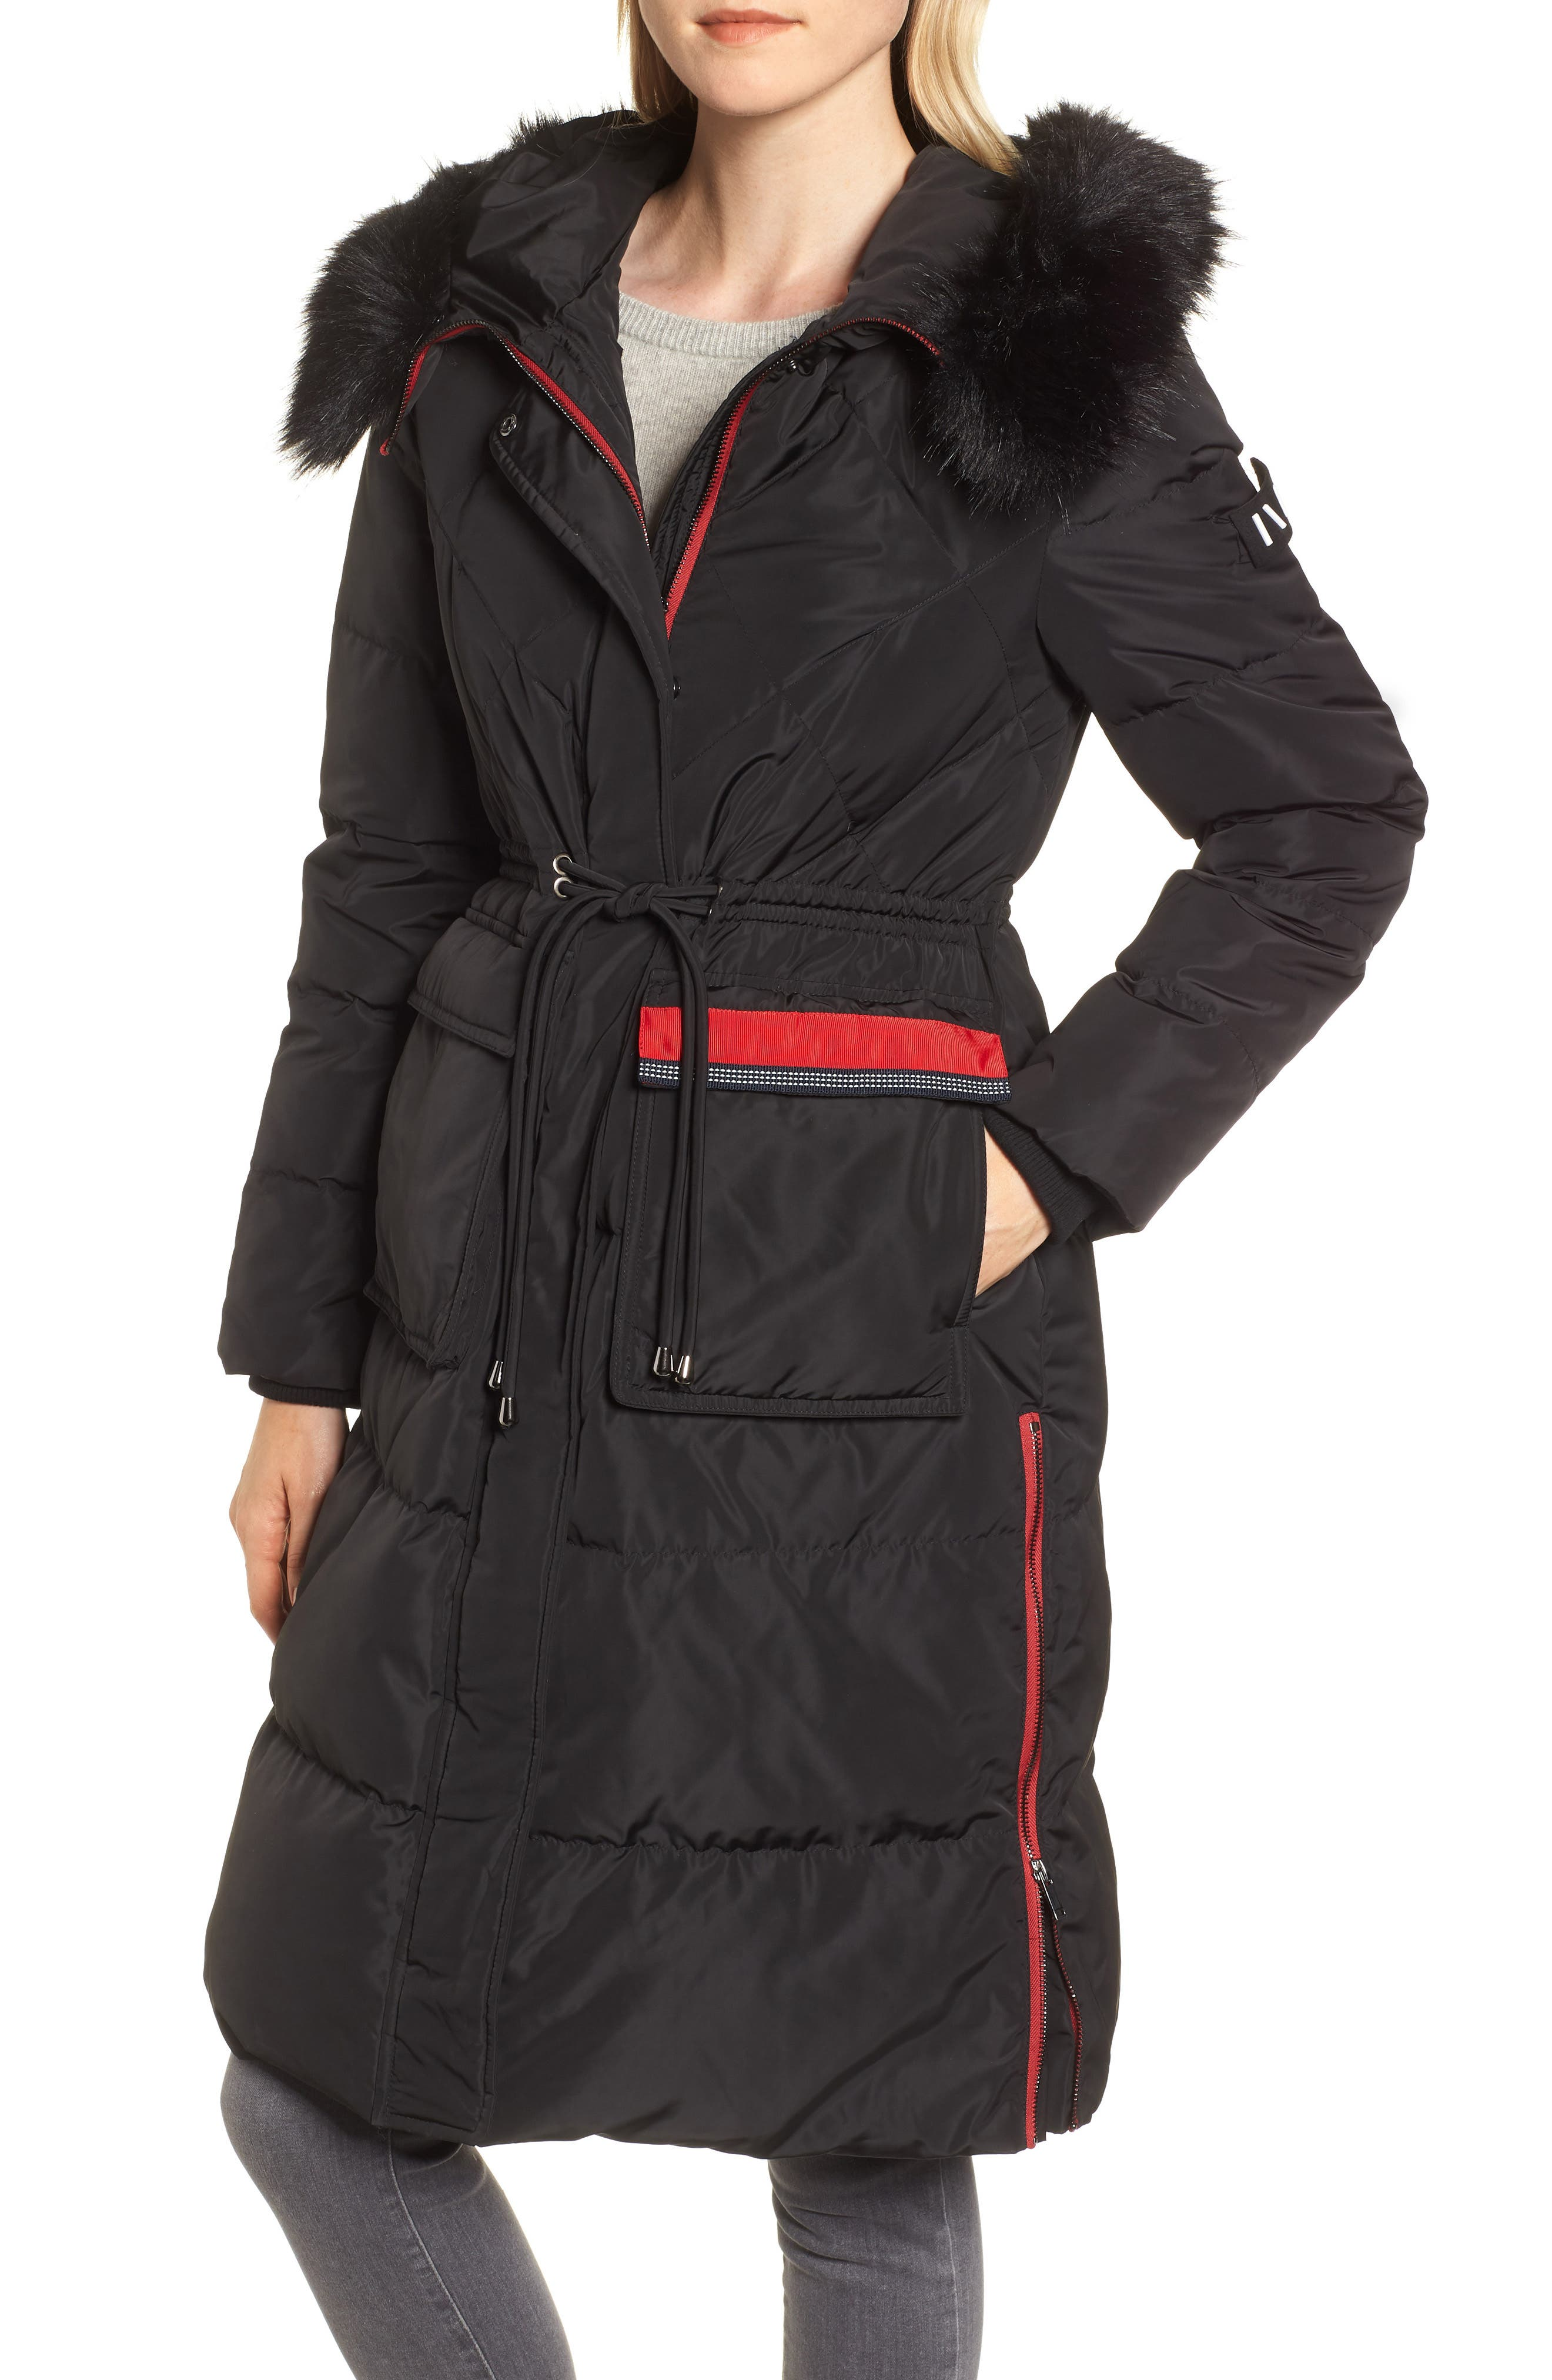 Nvlt Down Faux Fur Trim Jacket, Black